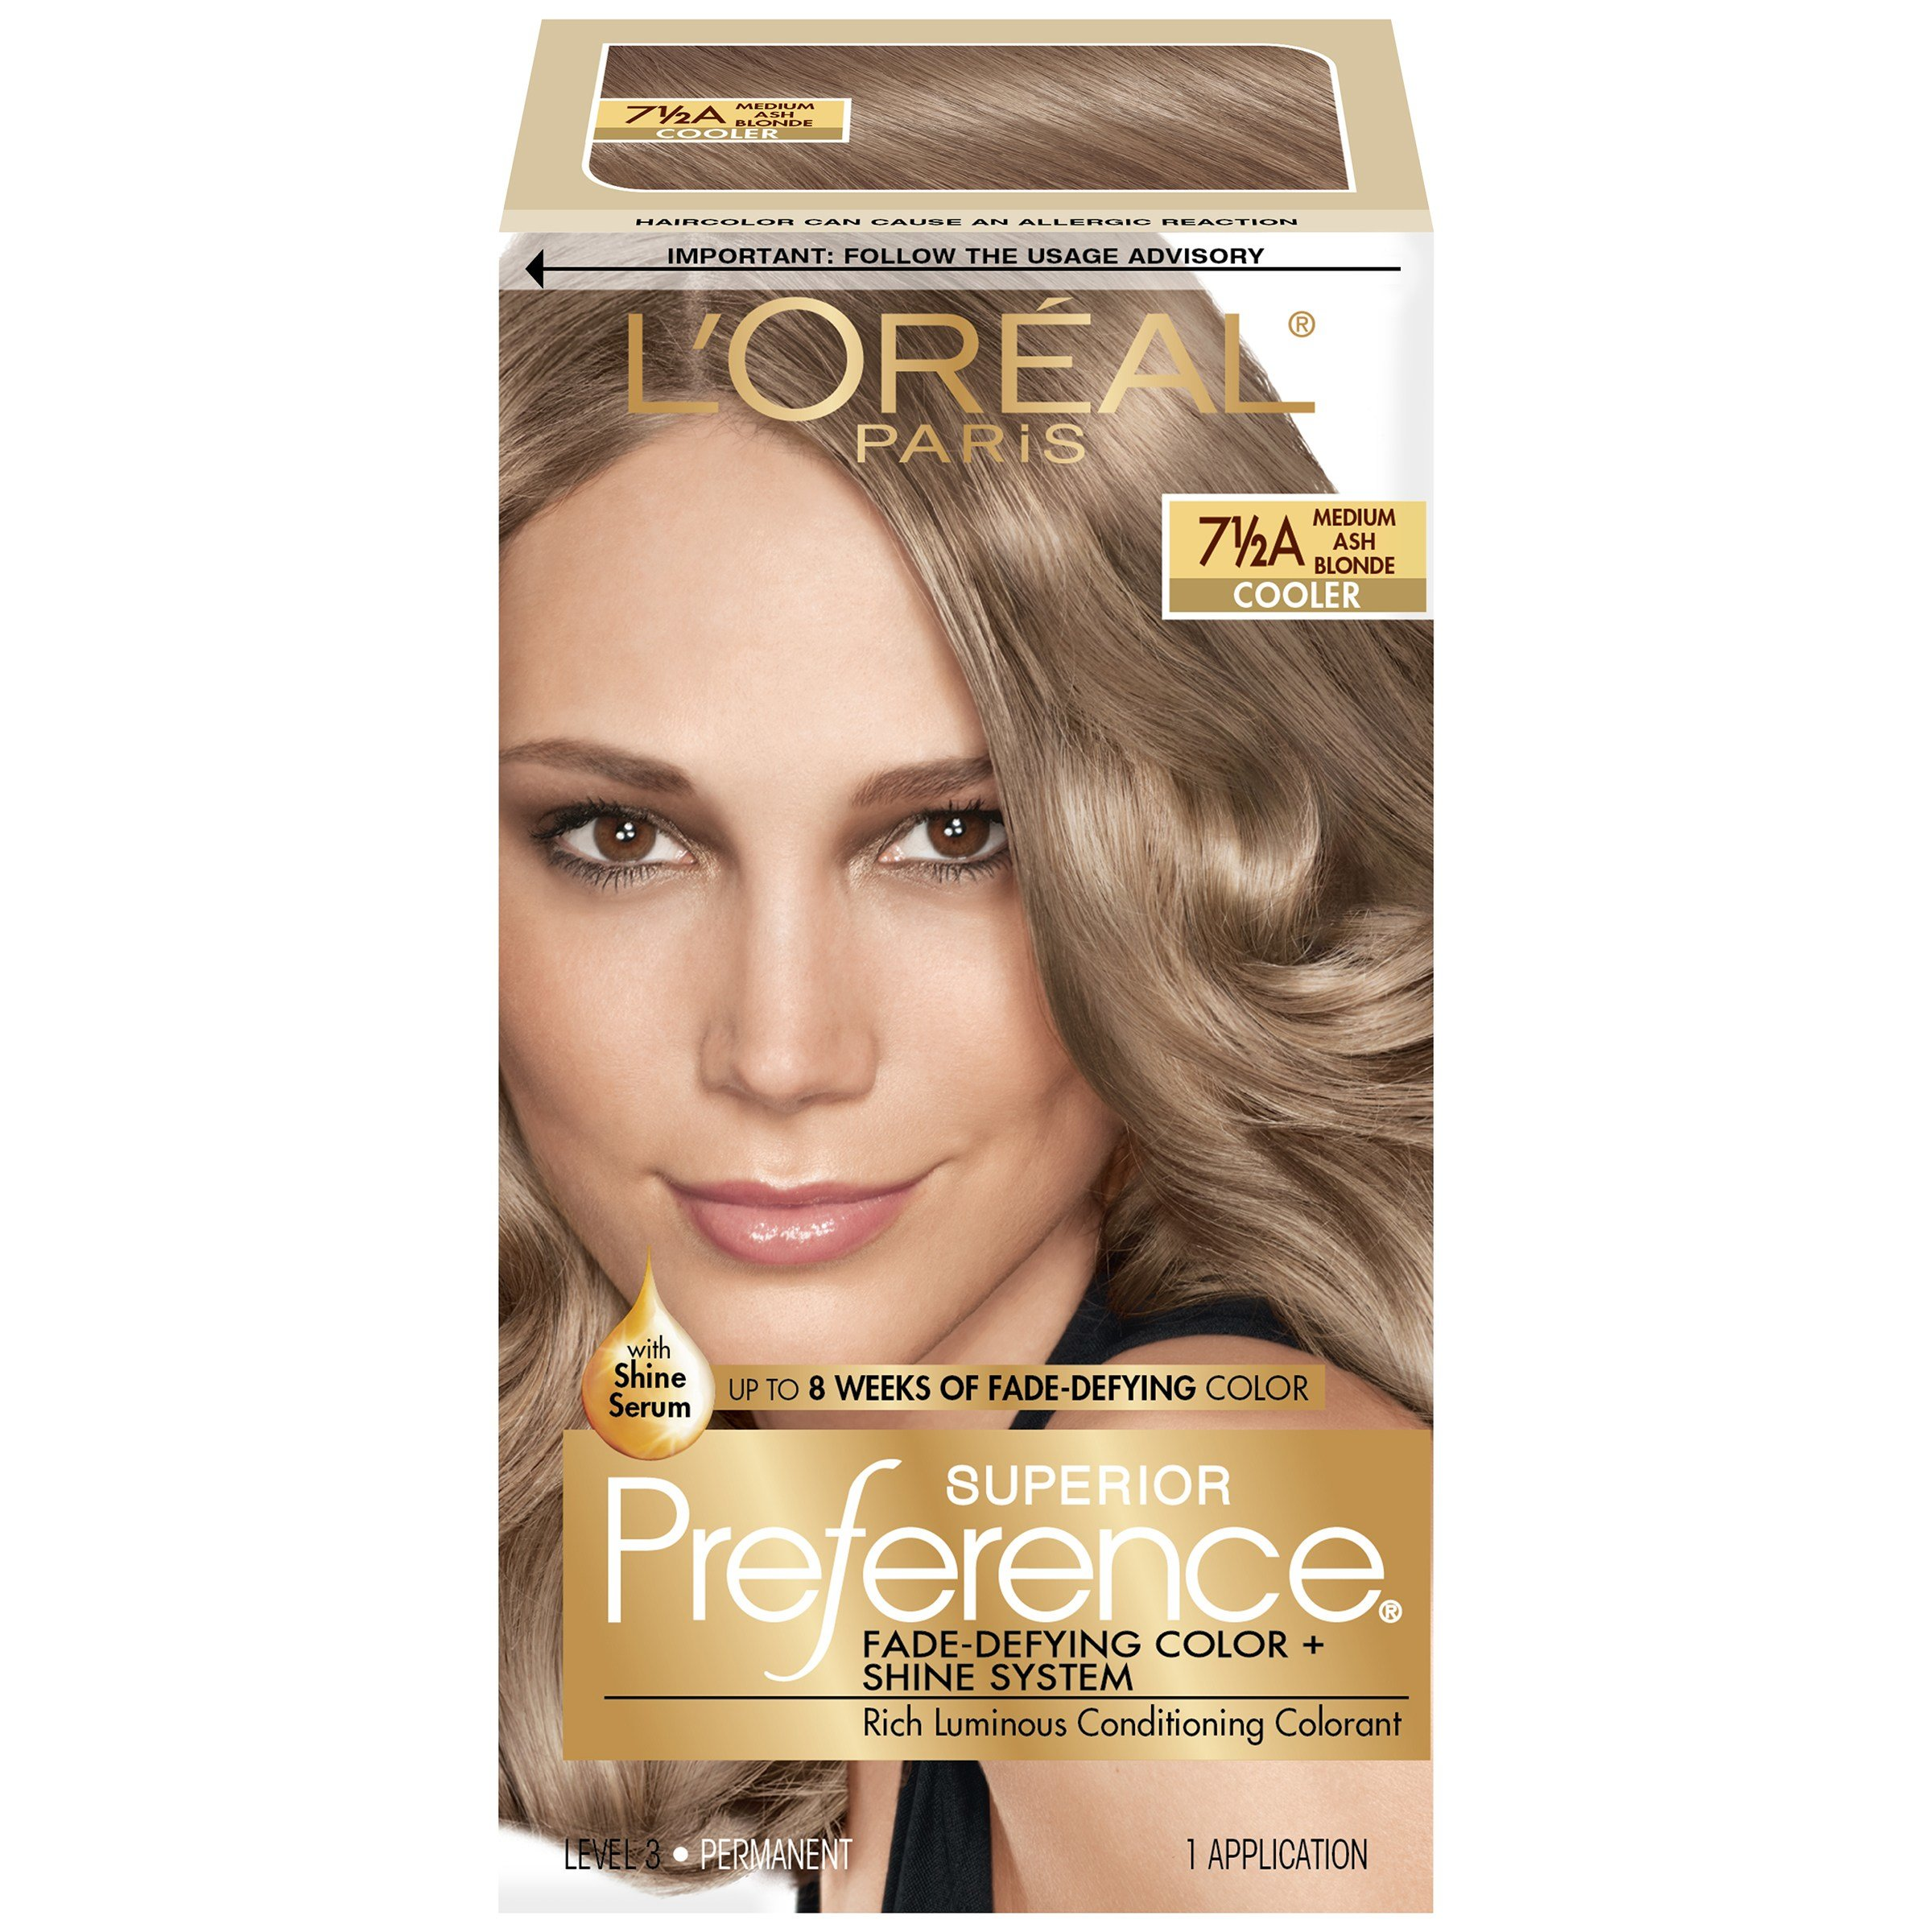 The Best L Oreal 7 1 2A Cooler Medium Ash Blonde Hair Color 1 Kt Pictures